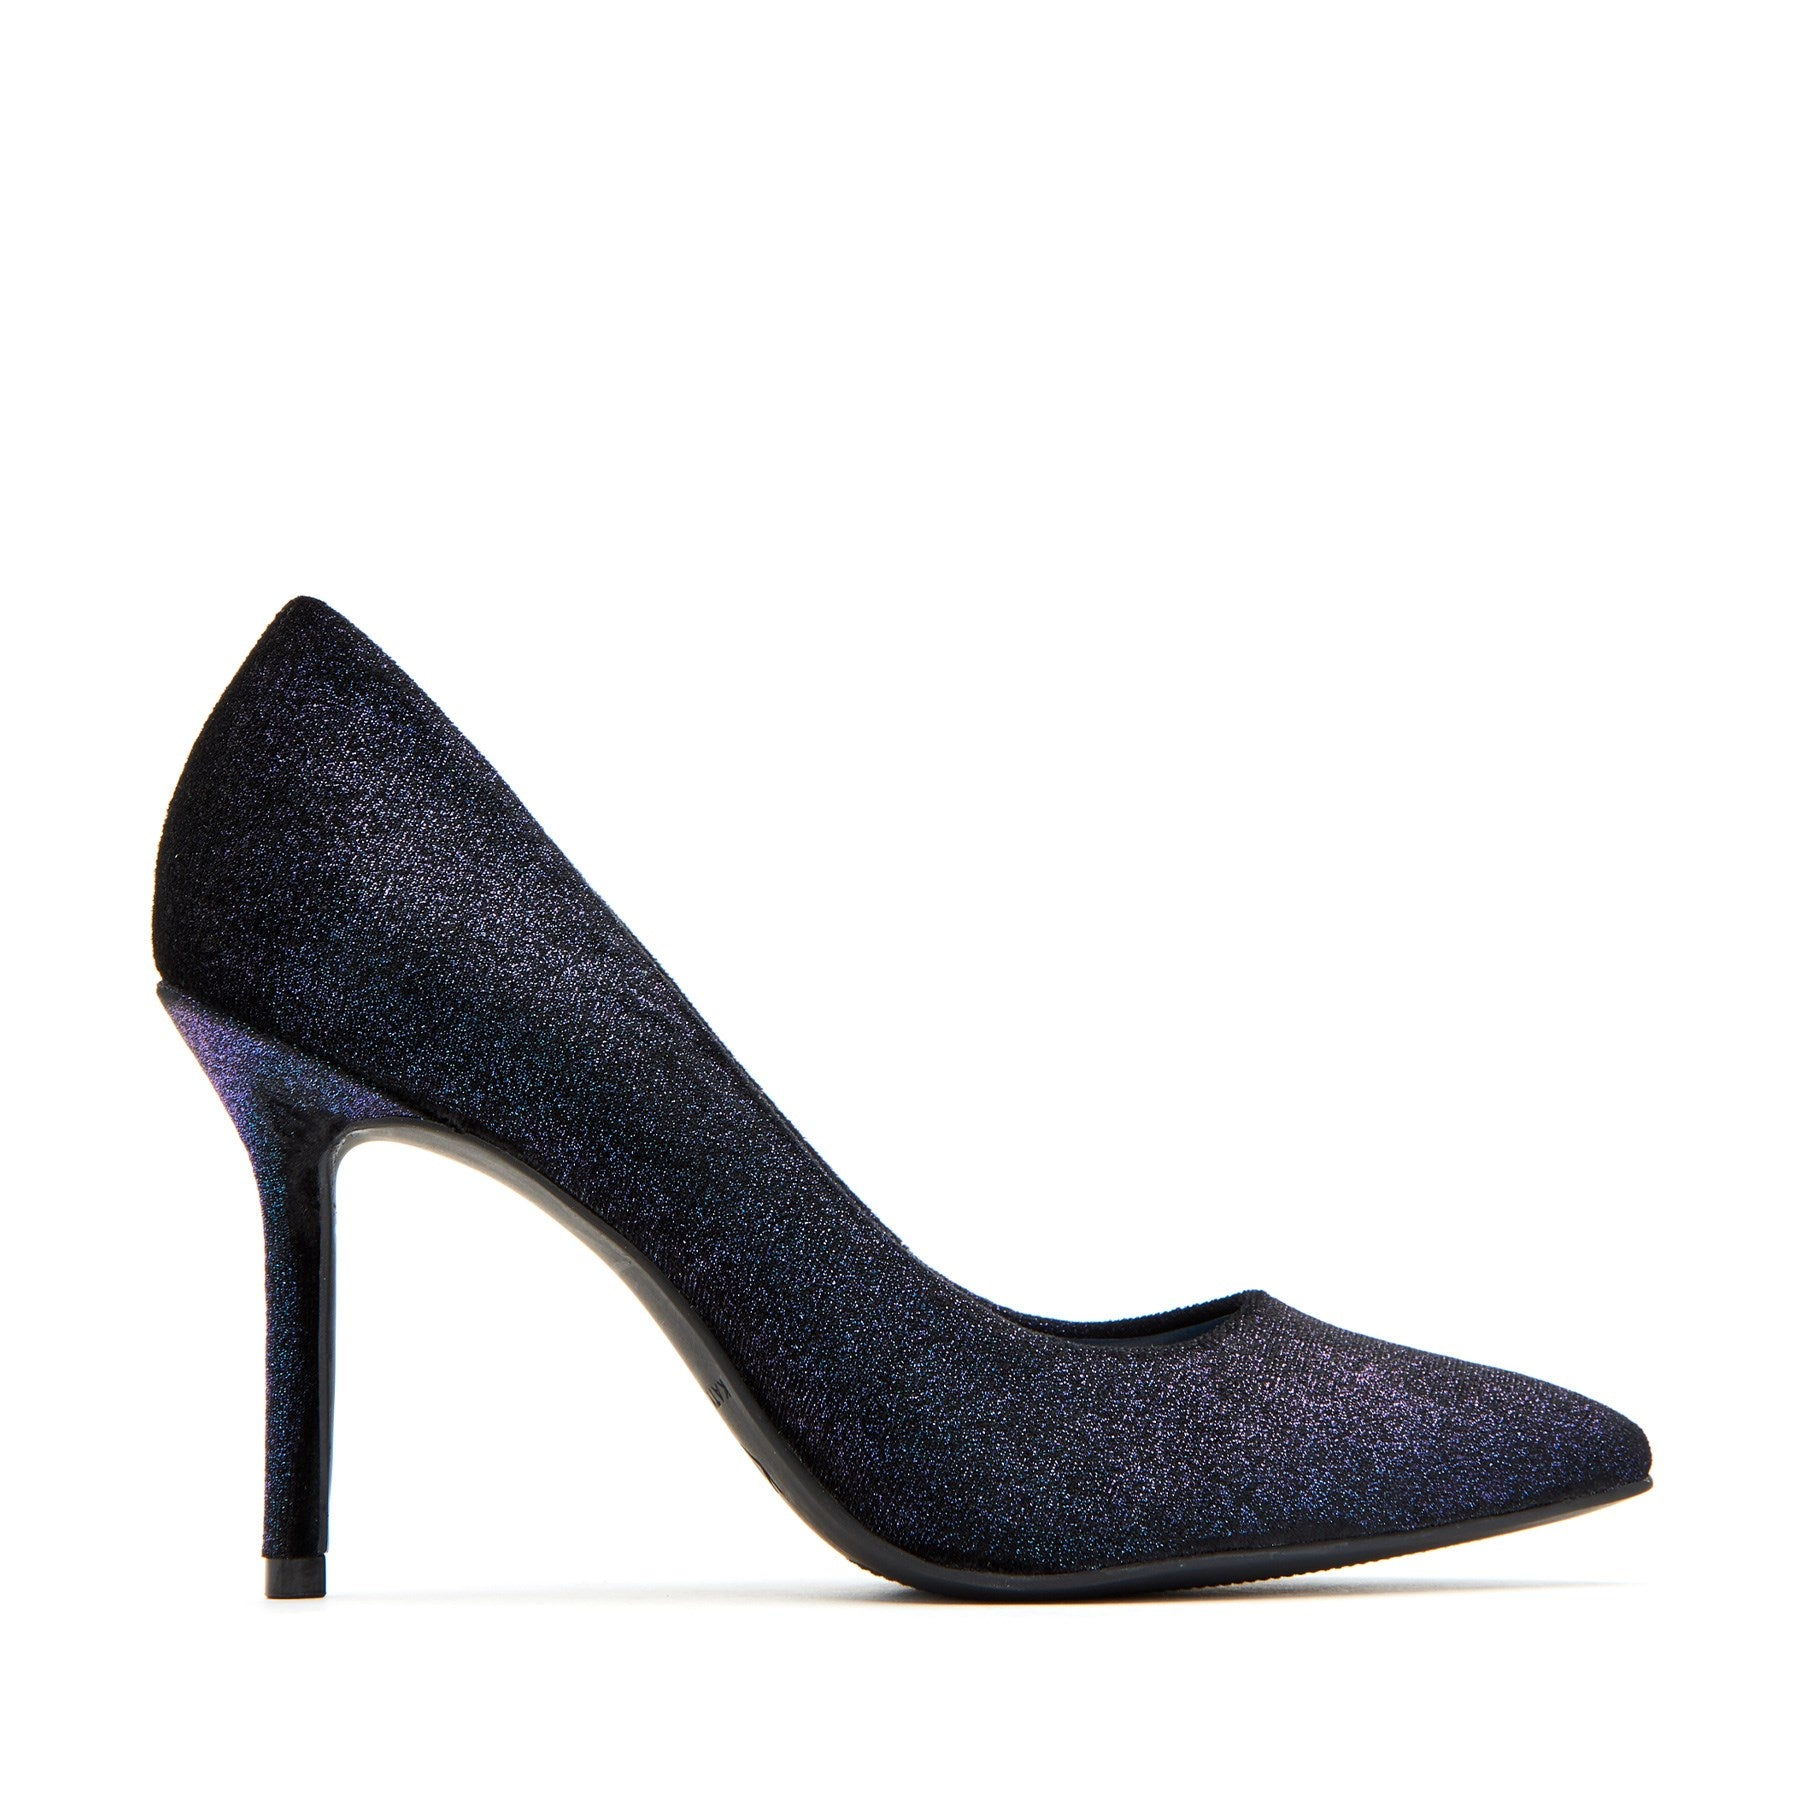 katy perry heeled pump velvet in grape size 7   the sissy